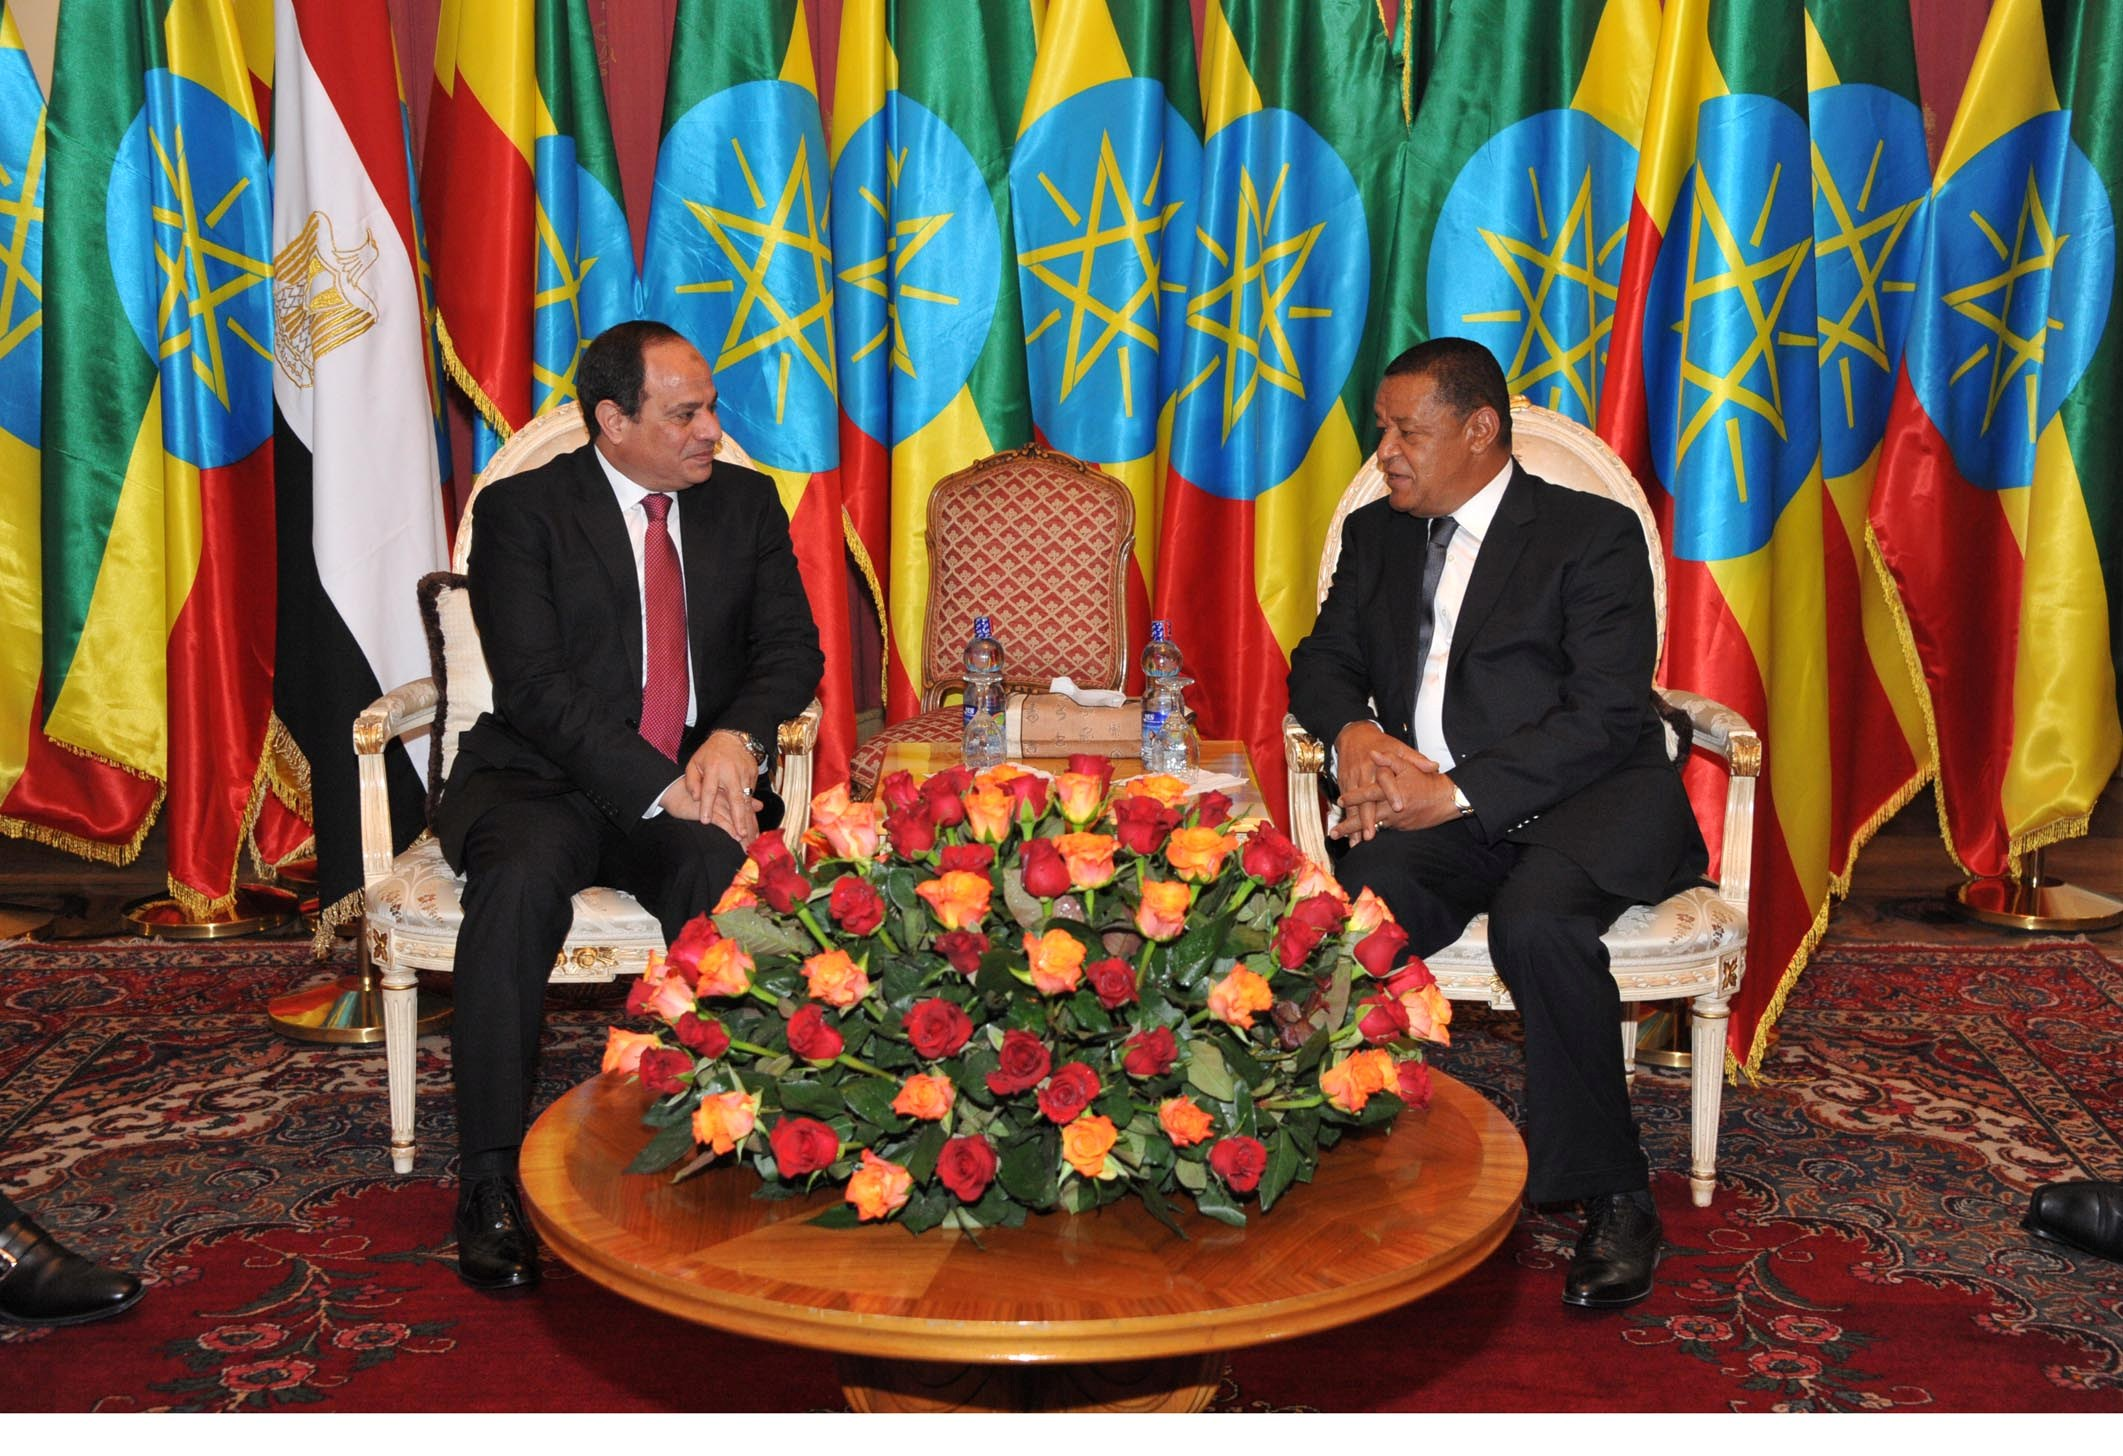 President Abdel Fattah Al-Sisi held talks with Ethiopian President Mulatu Teshome where both agreed on opening a new page in relations based on confidence-building and achieving mutual interest and benefit. (Photo Presidency Handout)